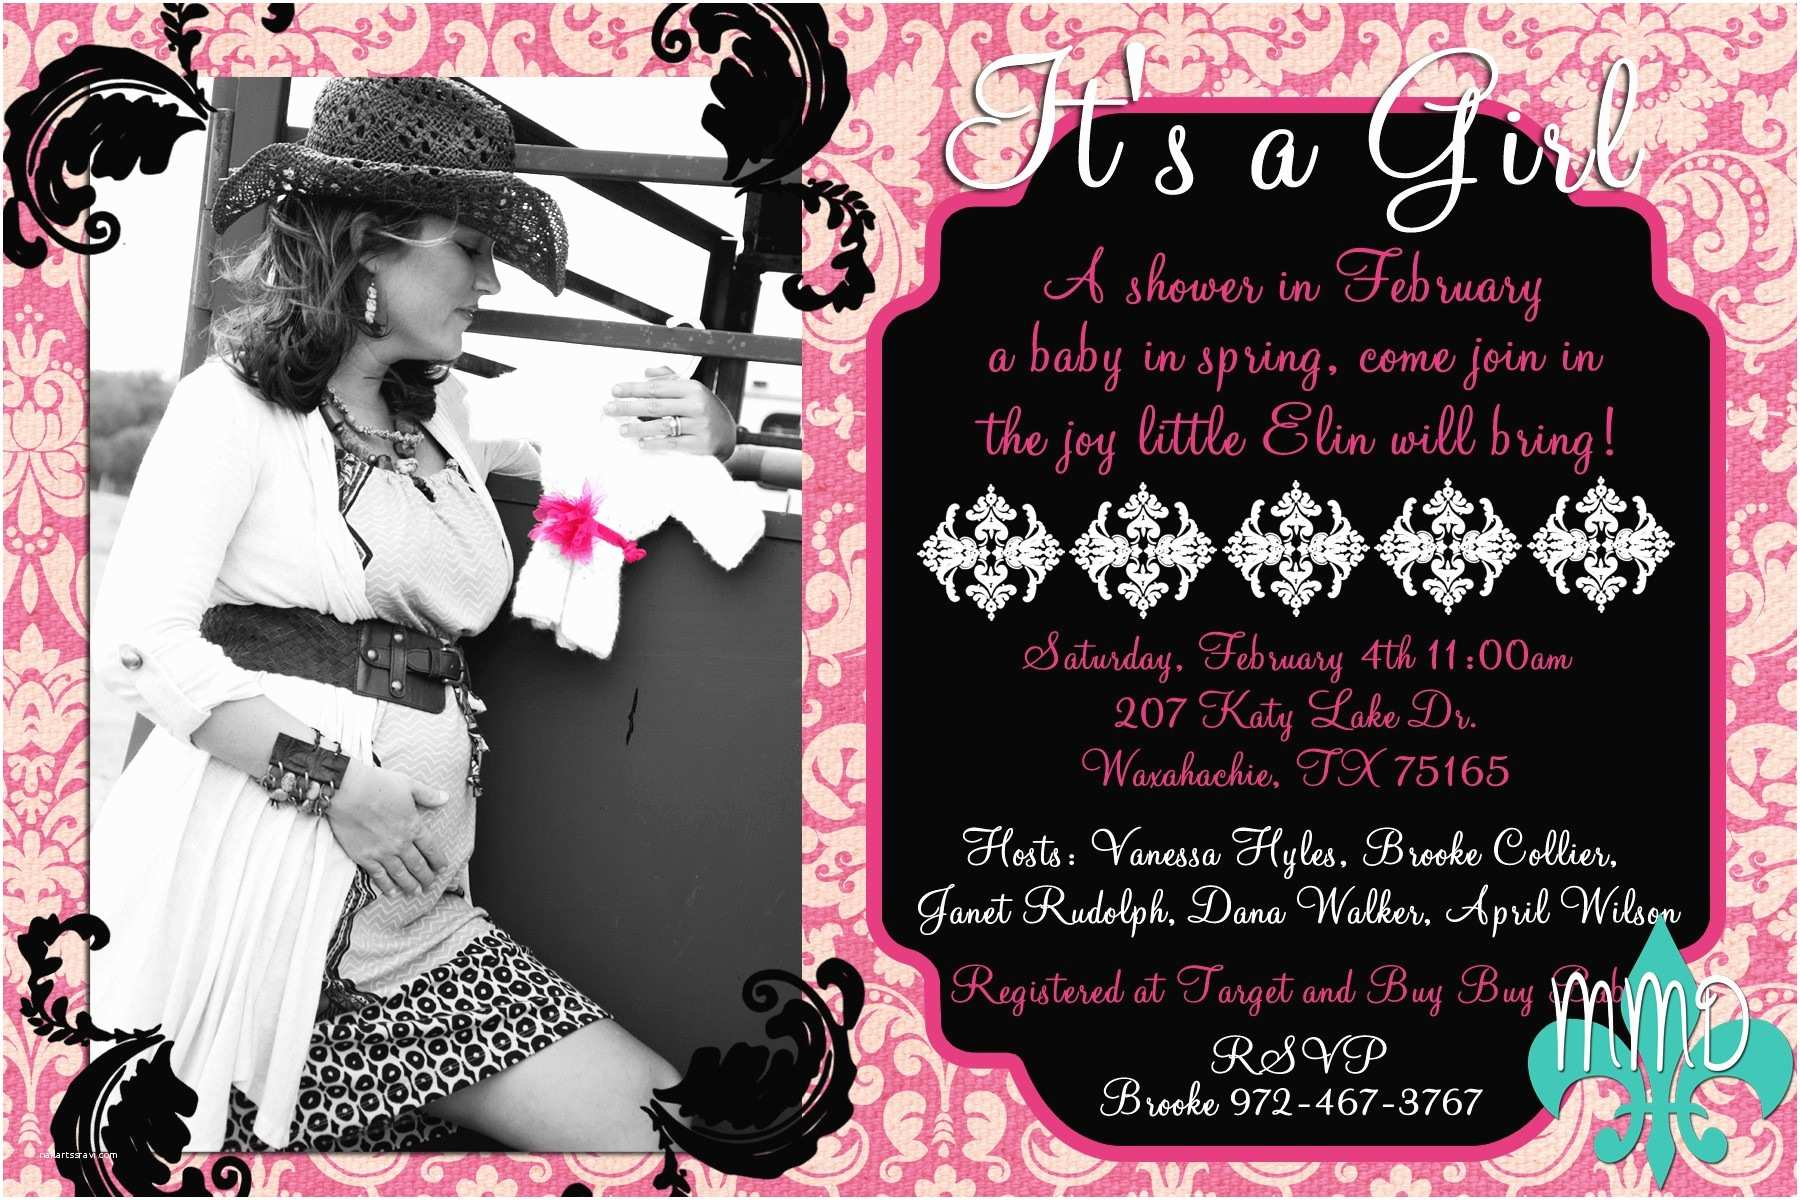 Custom Baby Shower Invitations Invitation for Baby Shower Marvellous Personalized Baby